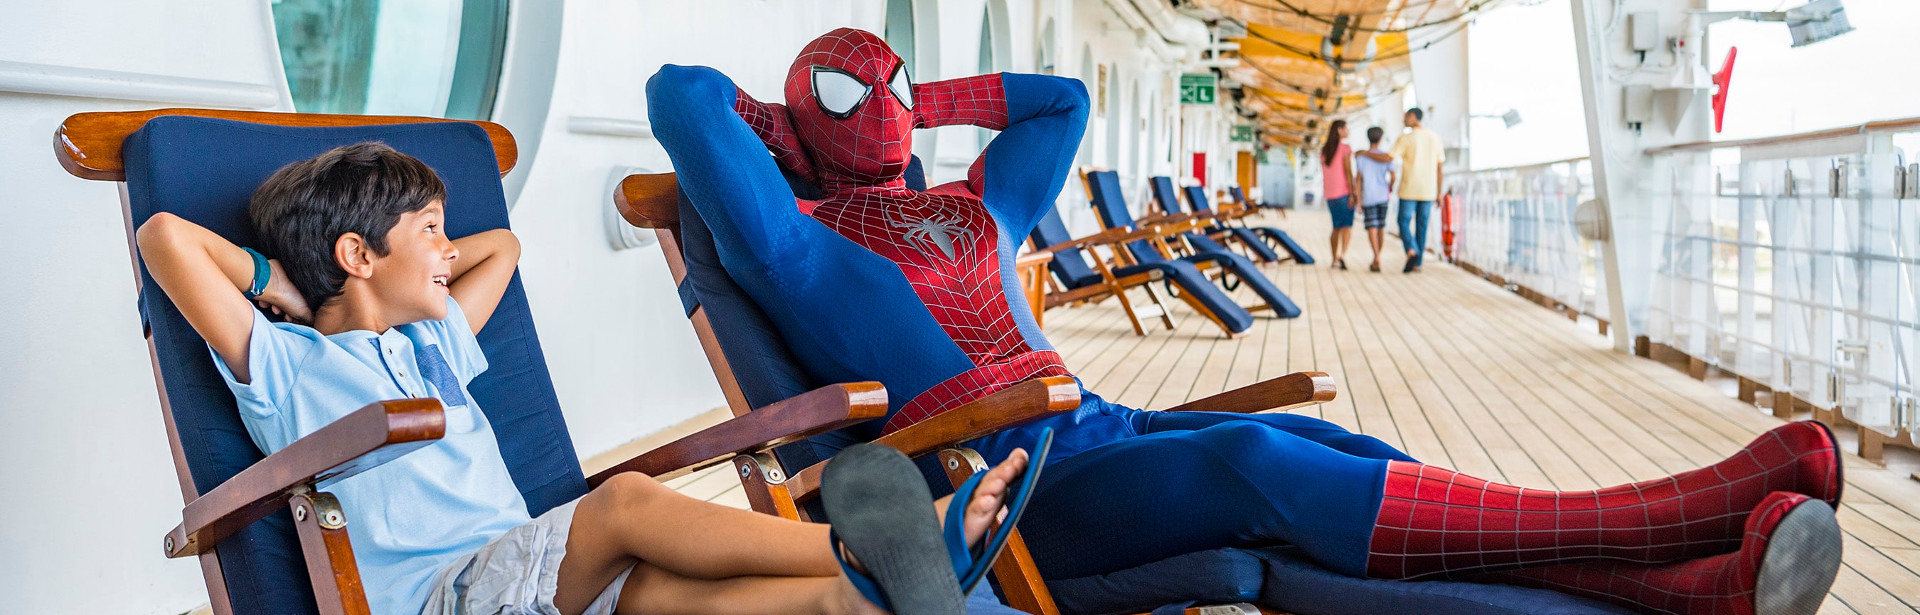 Marvel e Star Wars Day at Sea